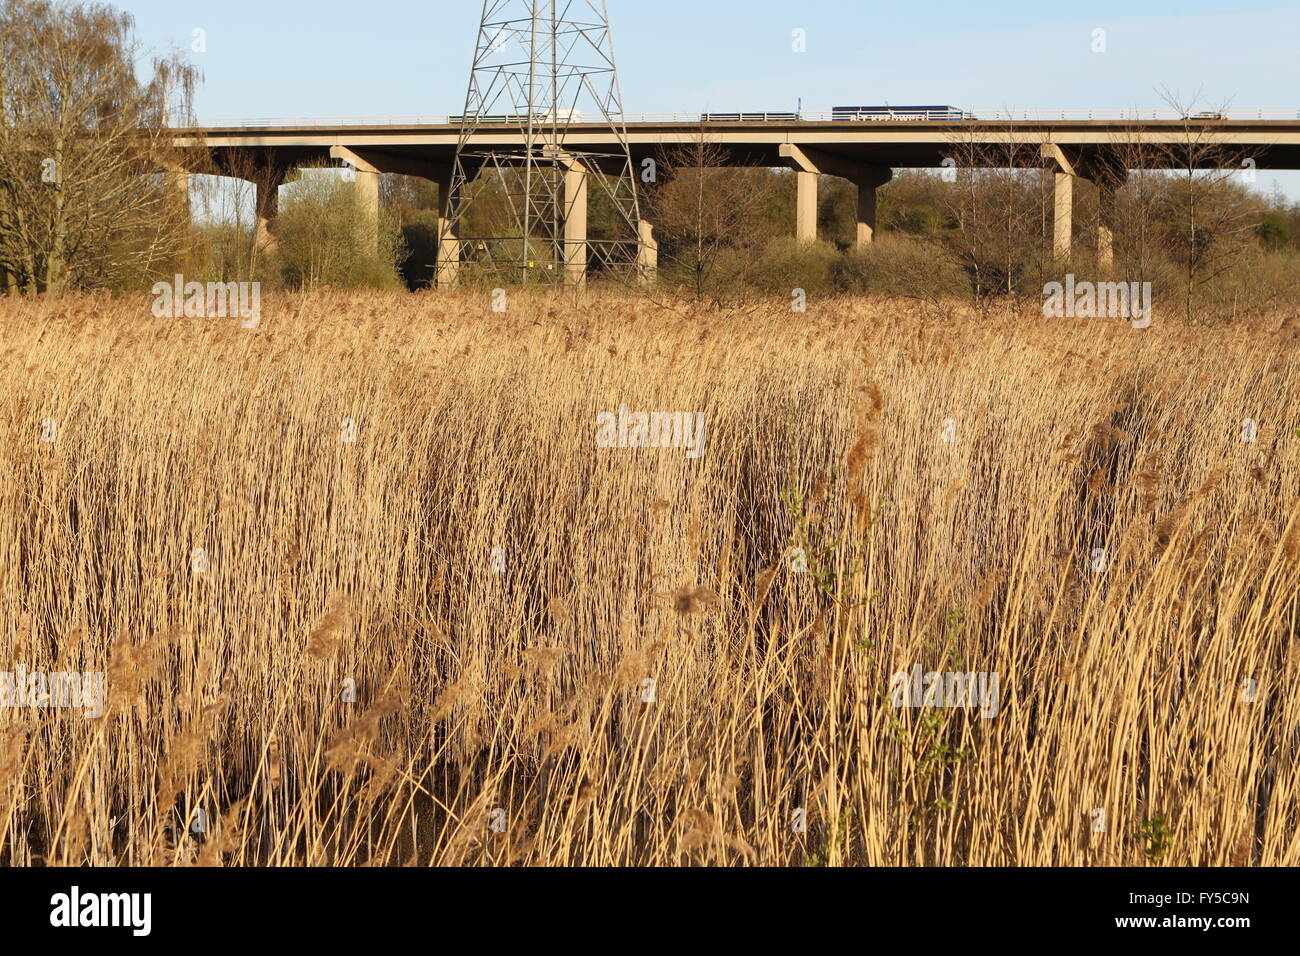 urban reed bed next to flyover - Stock Image